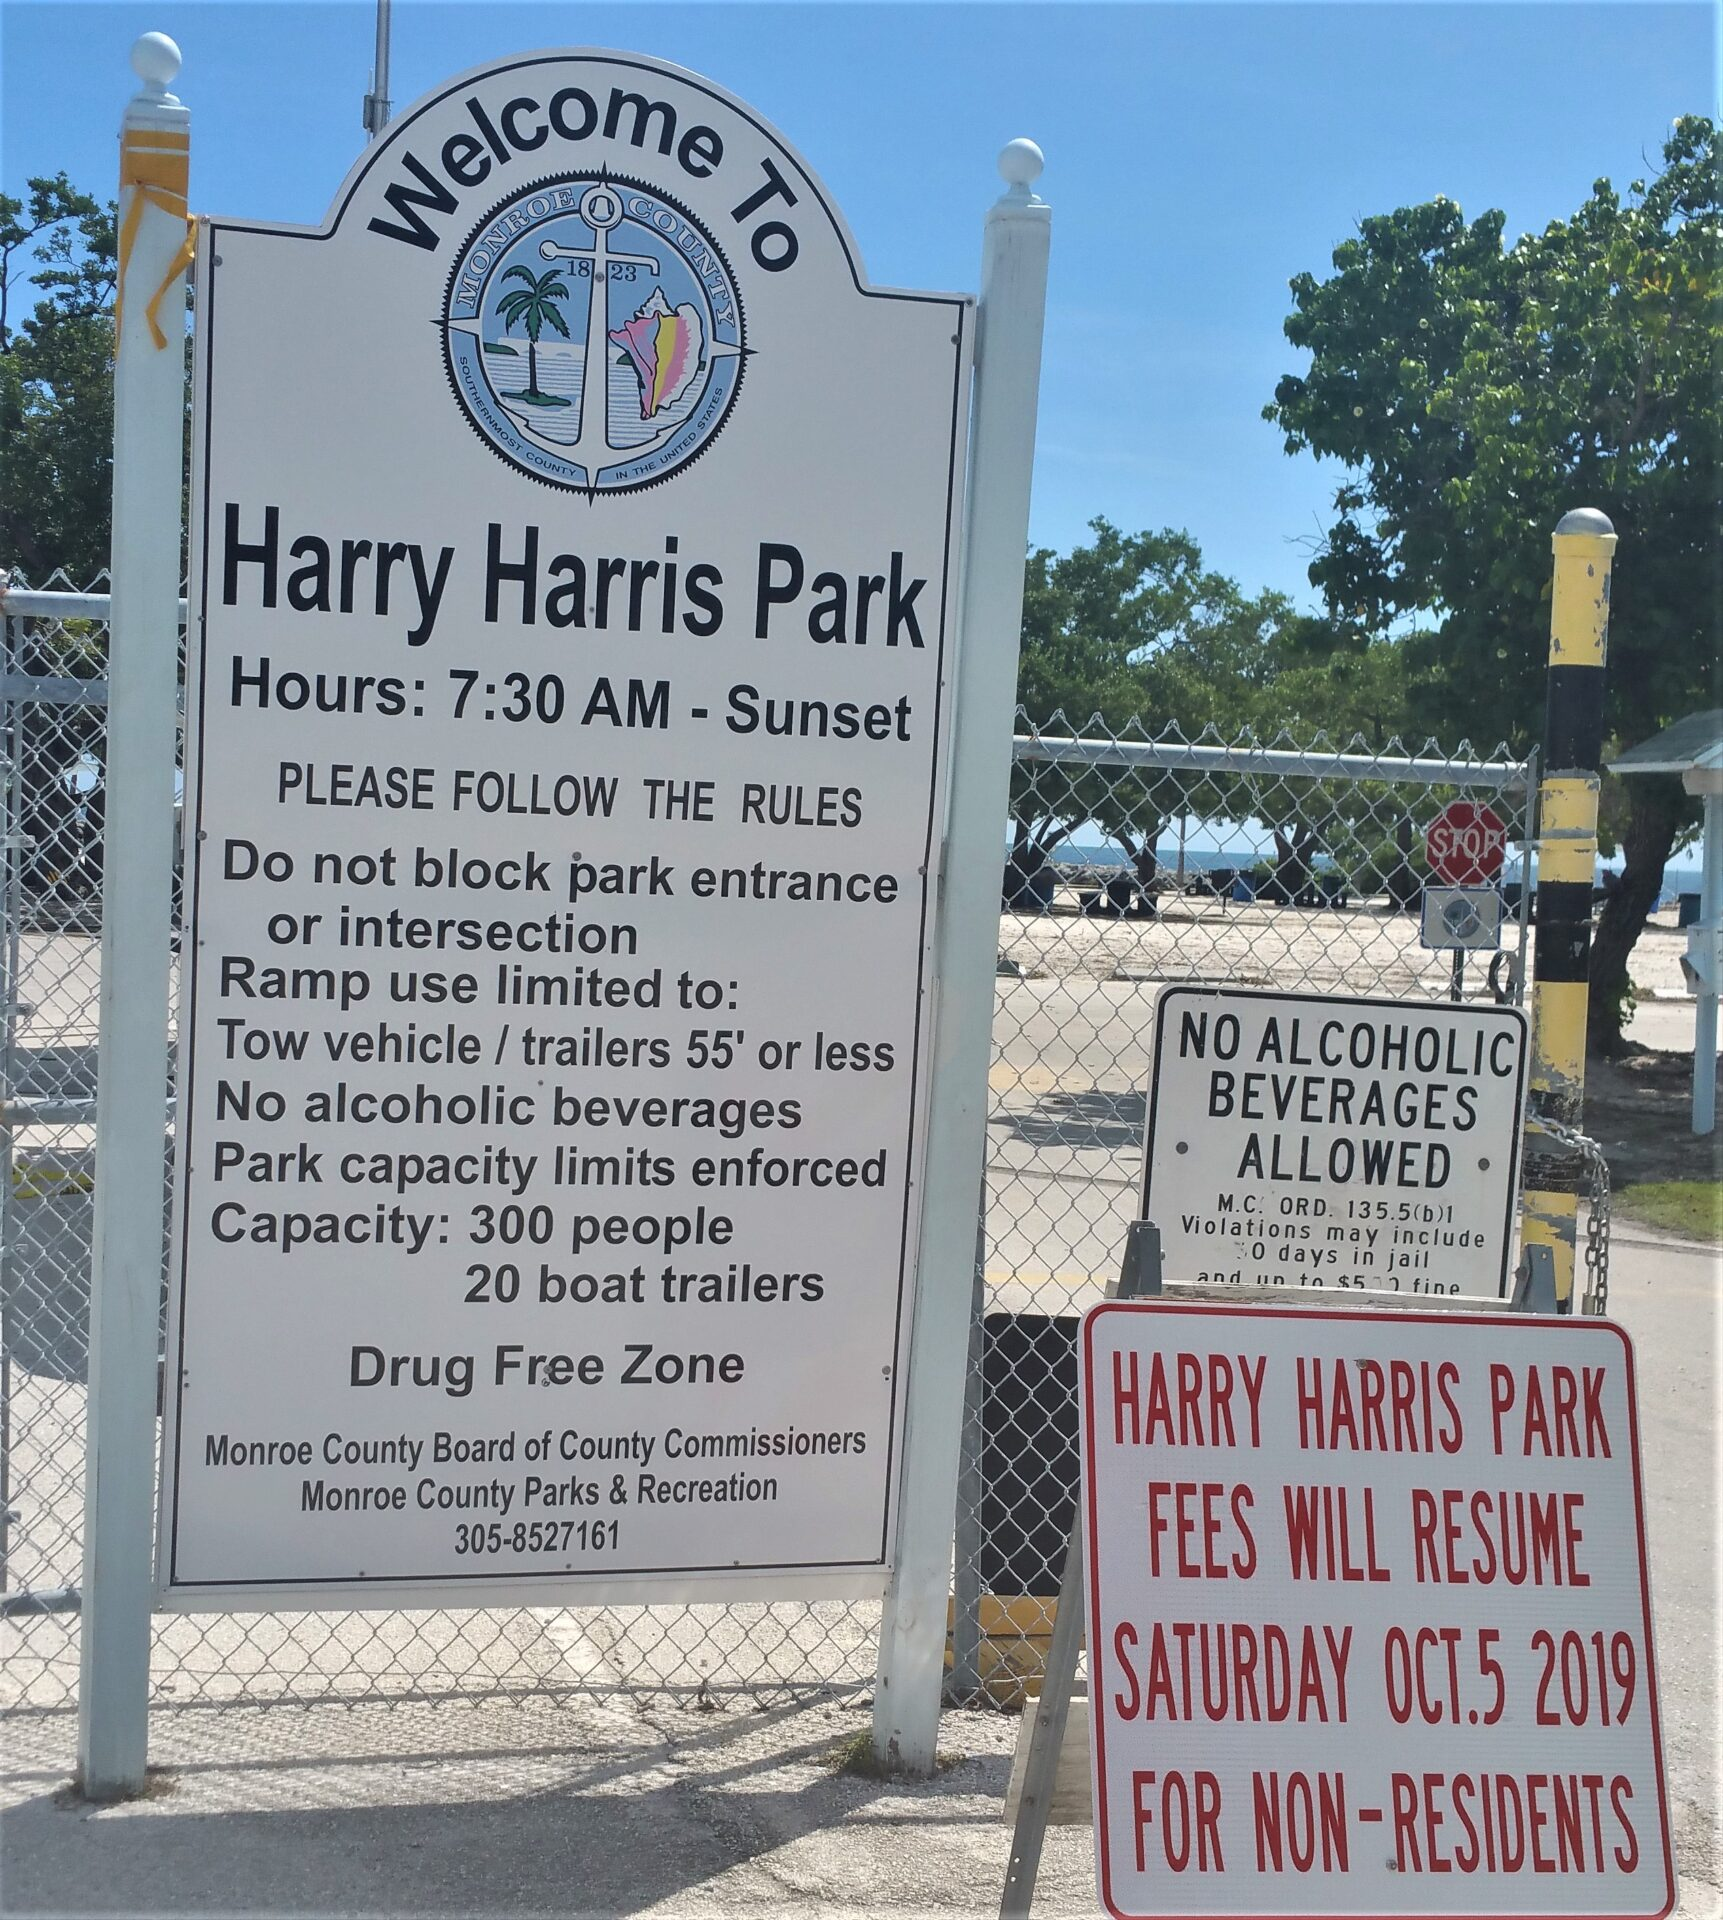 Harry Harris Park Updates – Fees